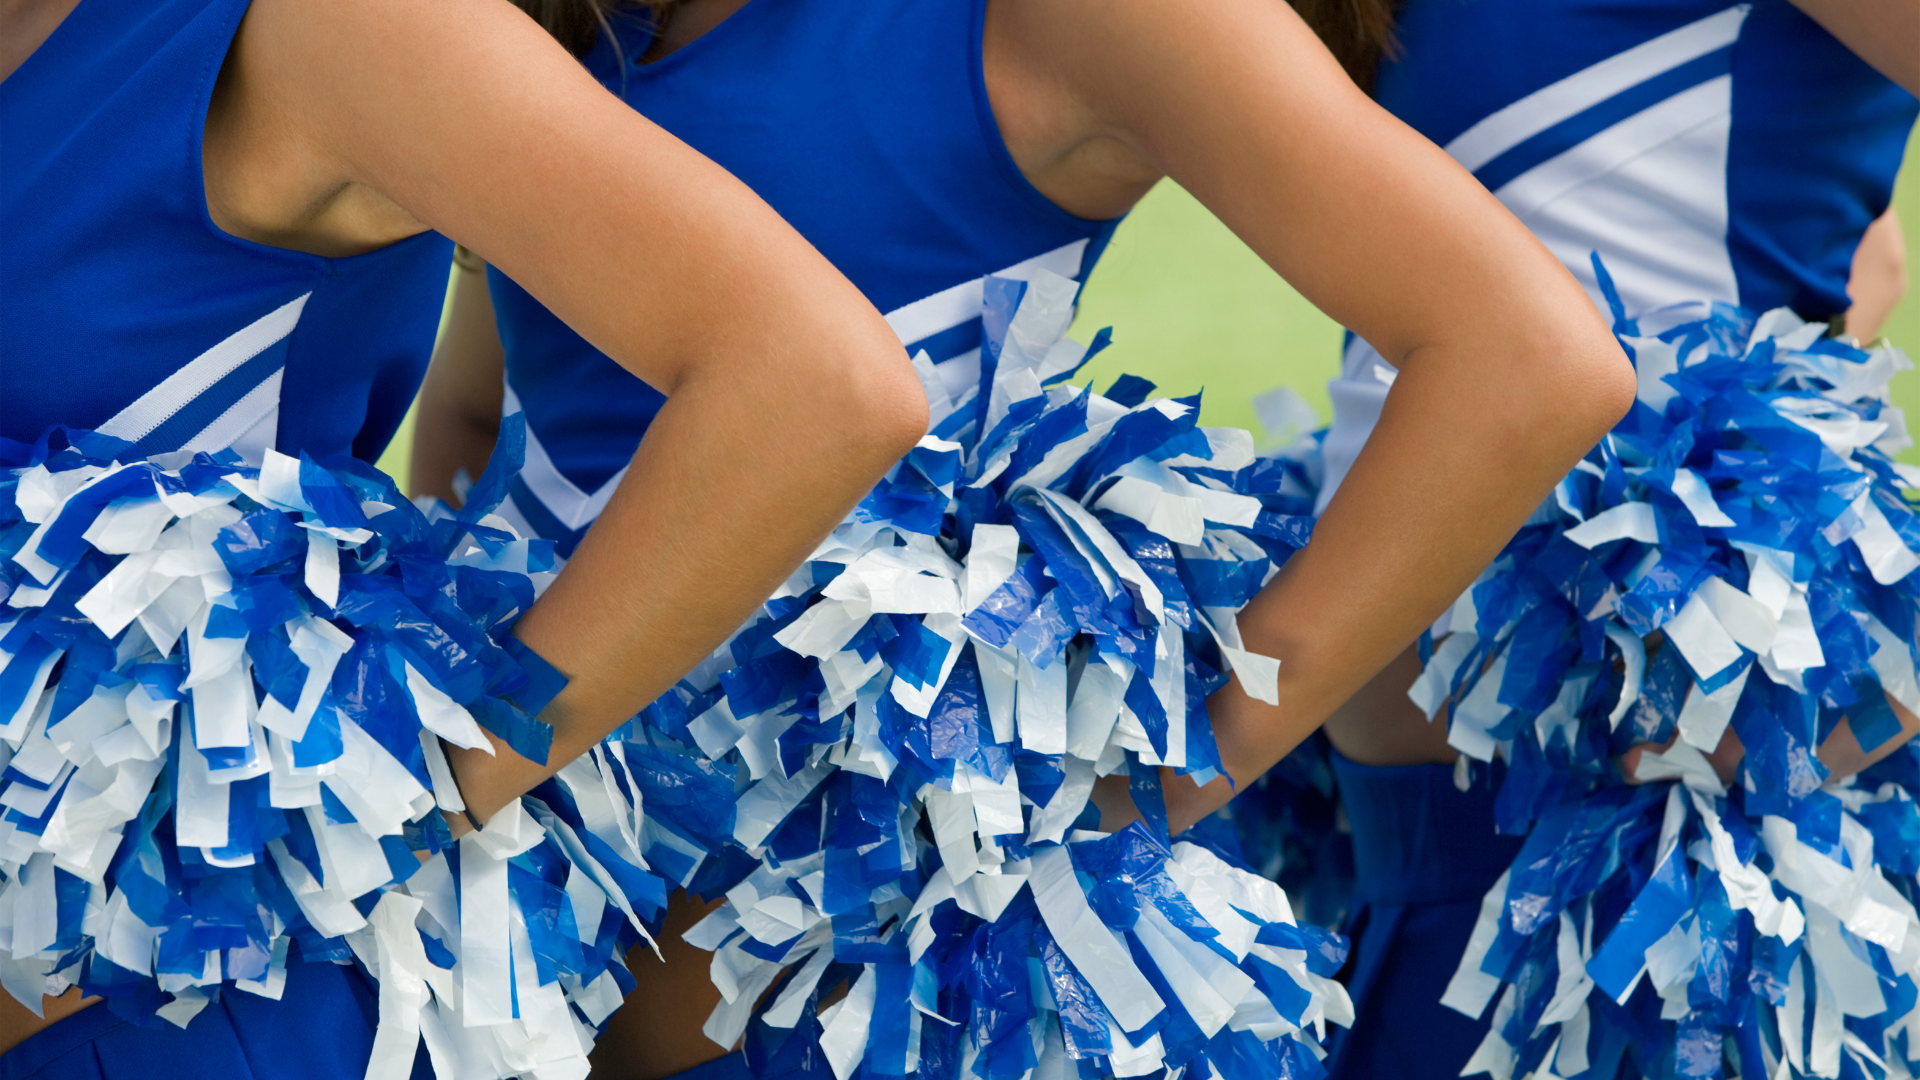 cheerleading clinic - WHO: All children entering K4 - 5th gradeWHEN: Wednesday, July 24, 2019 // 9:00 AM - 12:00 PMCOST: $55 per participant*Completed registration forms may be sent to upward@nwcc.net